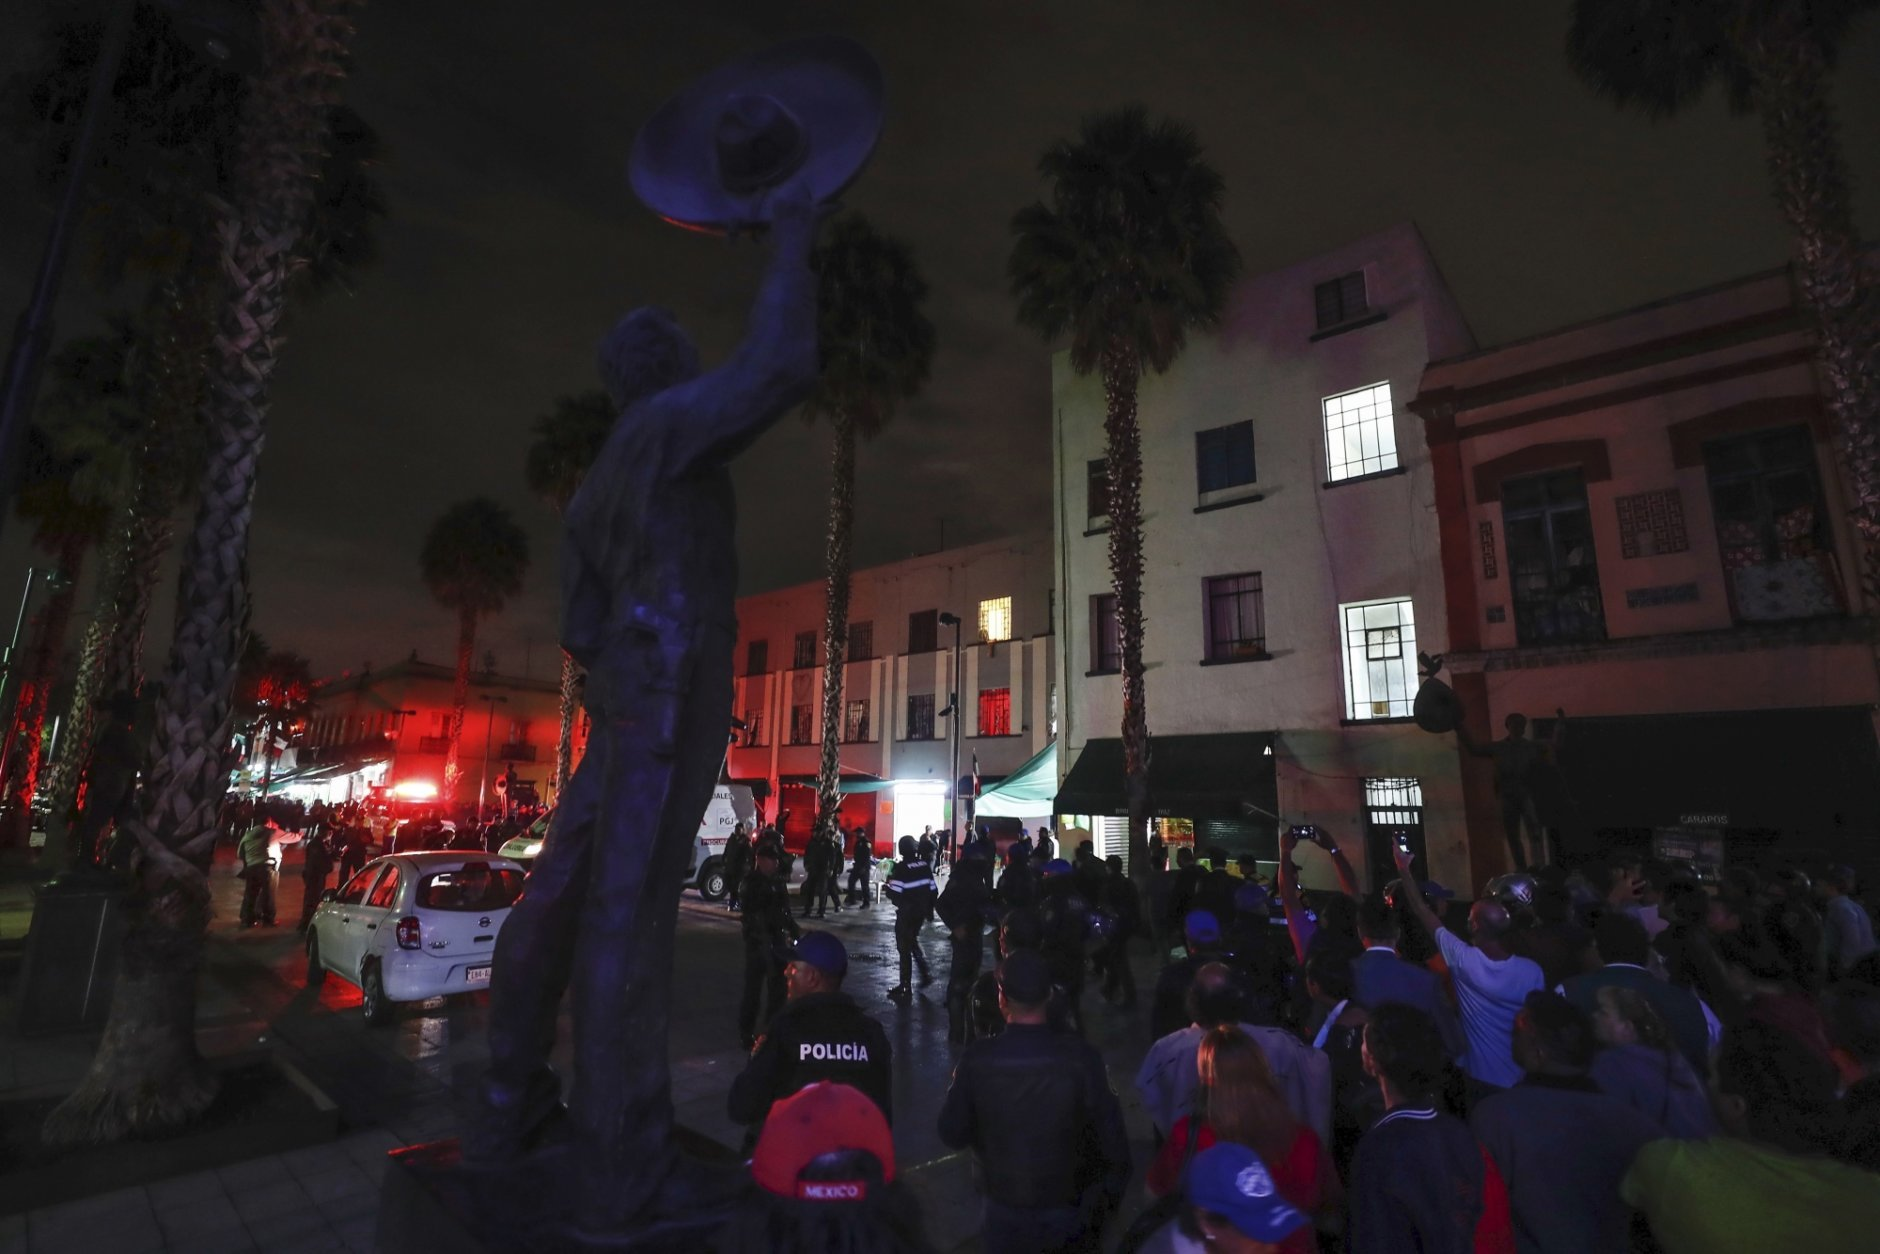 Curious onlookers gather on the perimeters of a crime scene after a shooting in Garibaldi Plaza in Mexico City, Friday, Sept. 14, 2018. Mexican authorities say at least four people have been killed and nine wounded in a shooting at the capital's emblematic plaza. (AP Photo/Stringer)